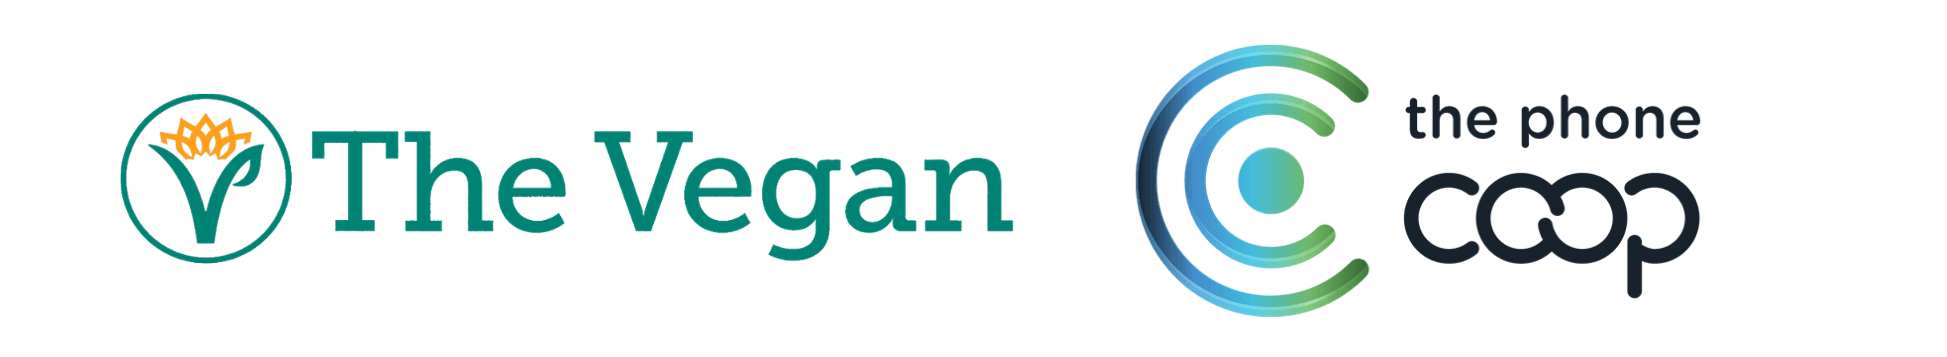 The Vegan title banner large